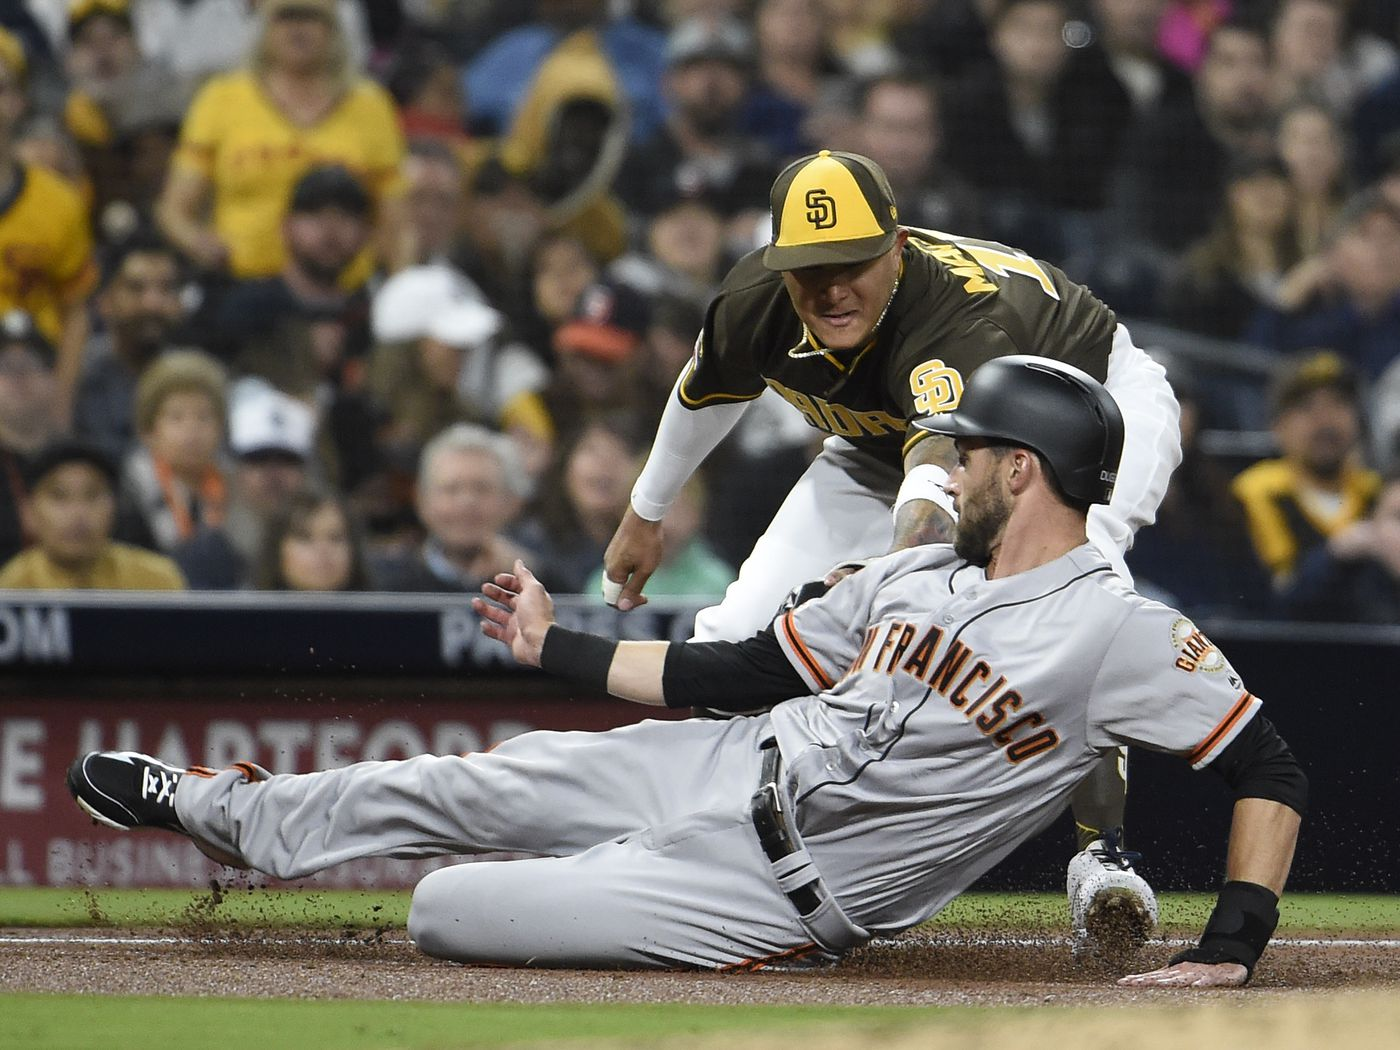 Giants avoid setting a franchise record in 4-1 loss to Padres ...